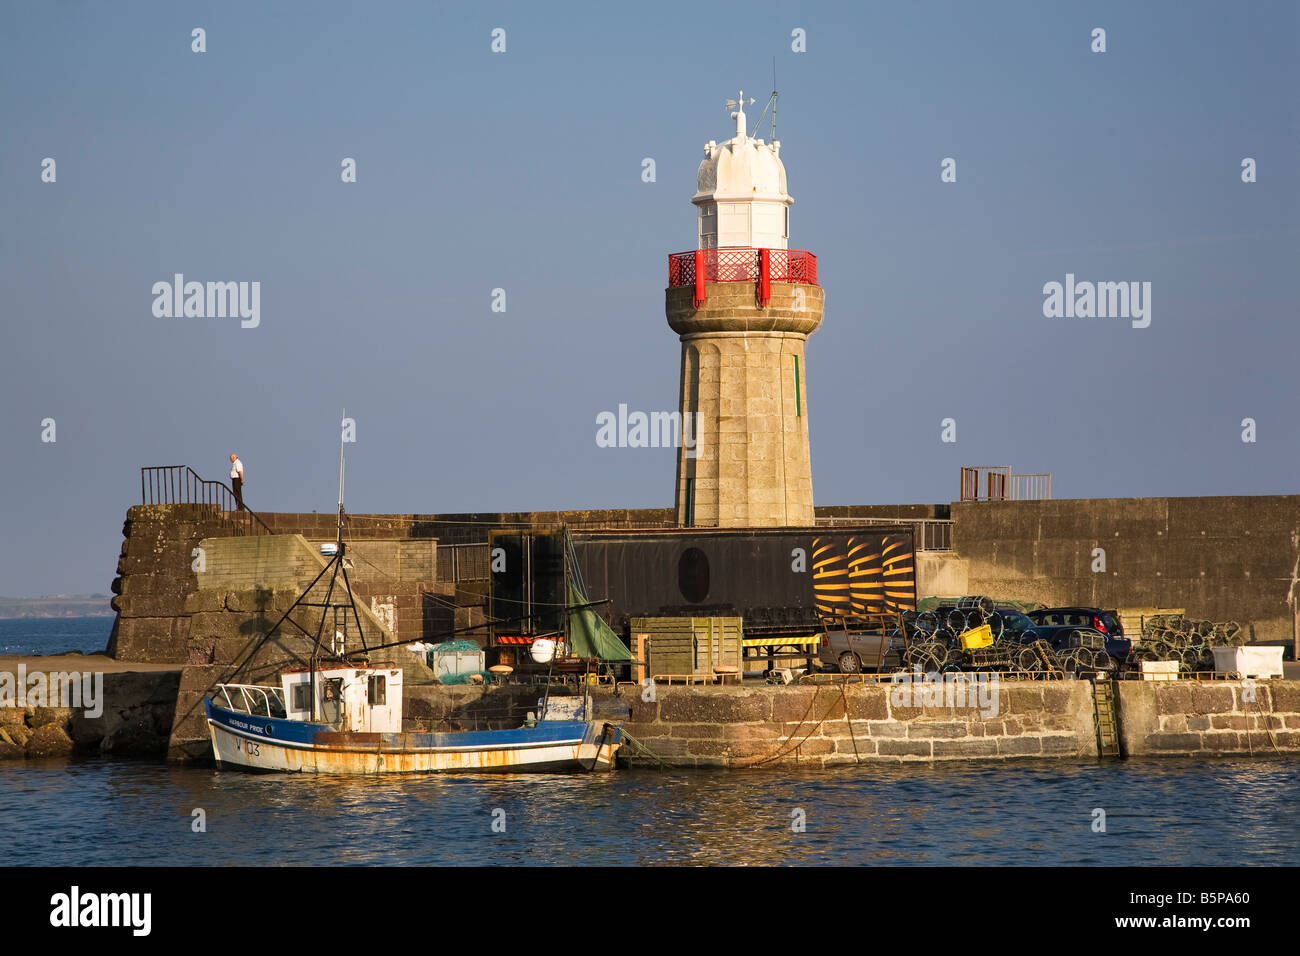 Lighthouse in  the Harbour built in 1815 by Alexander Nimmo, Dunmore East, County Waterford, Ireland - Stock Image